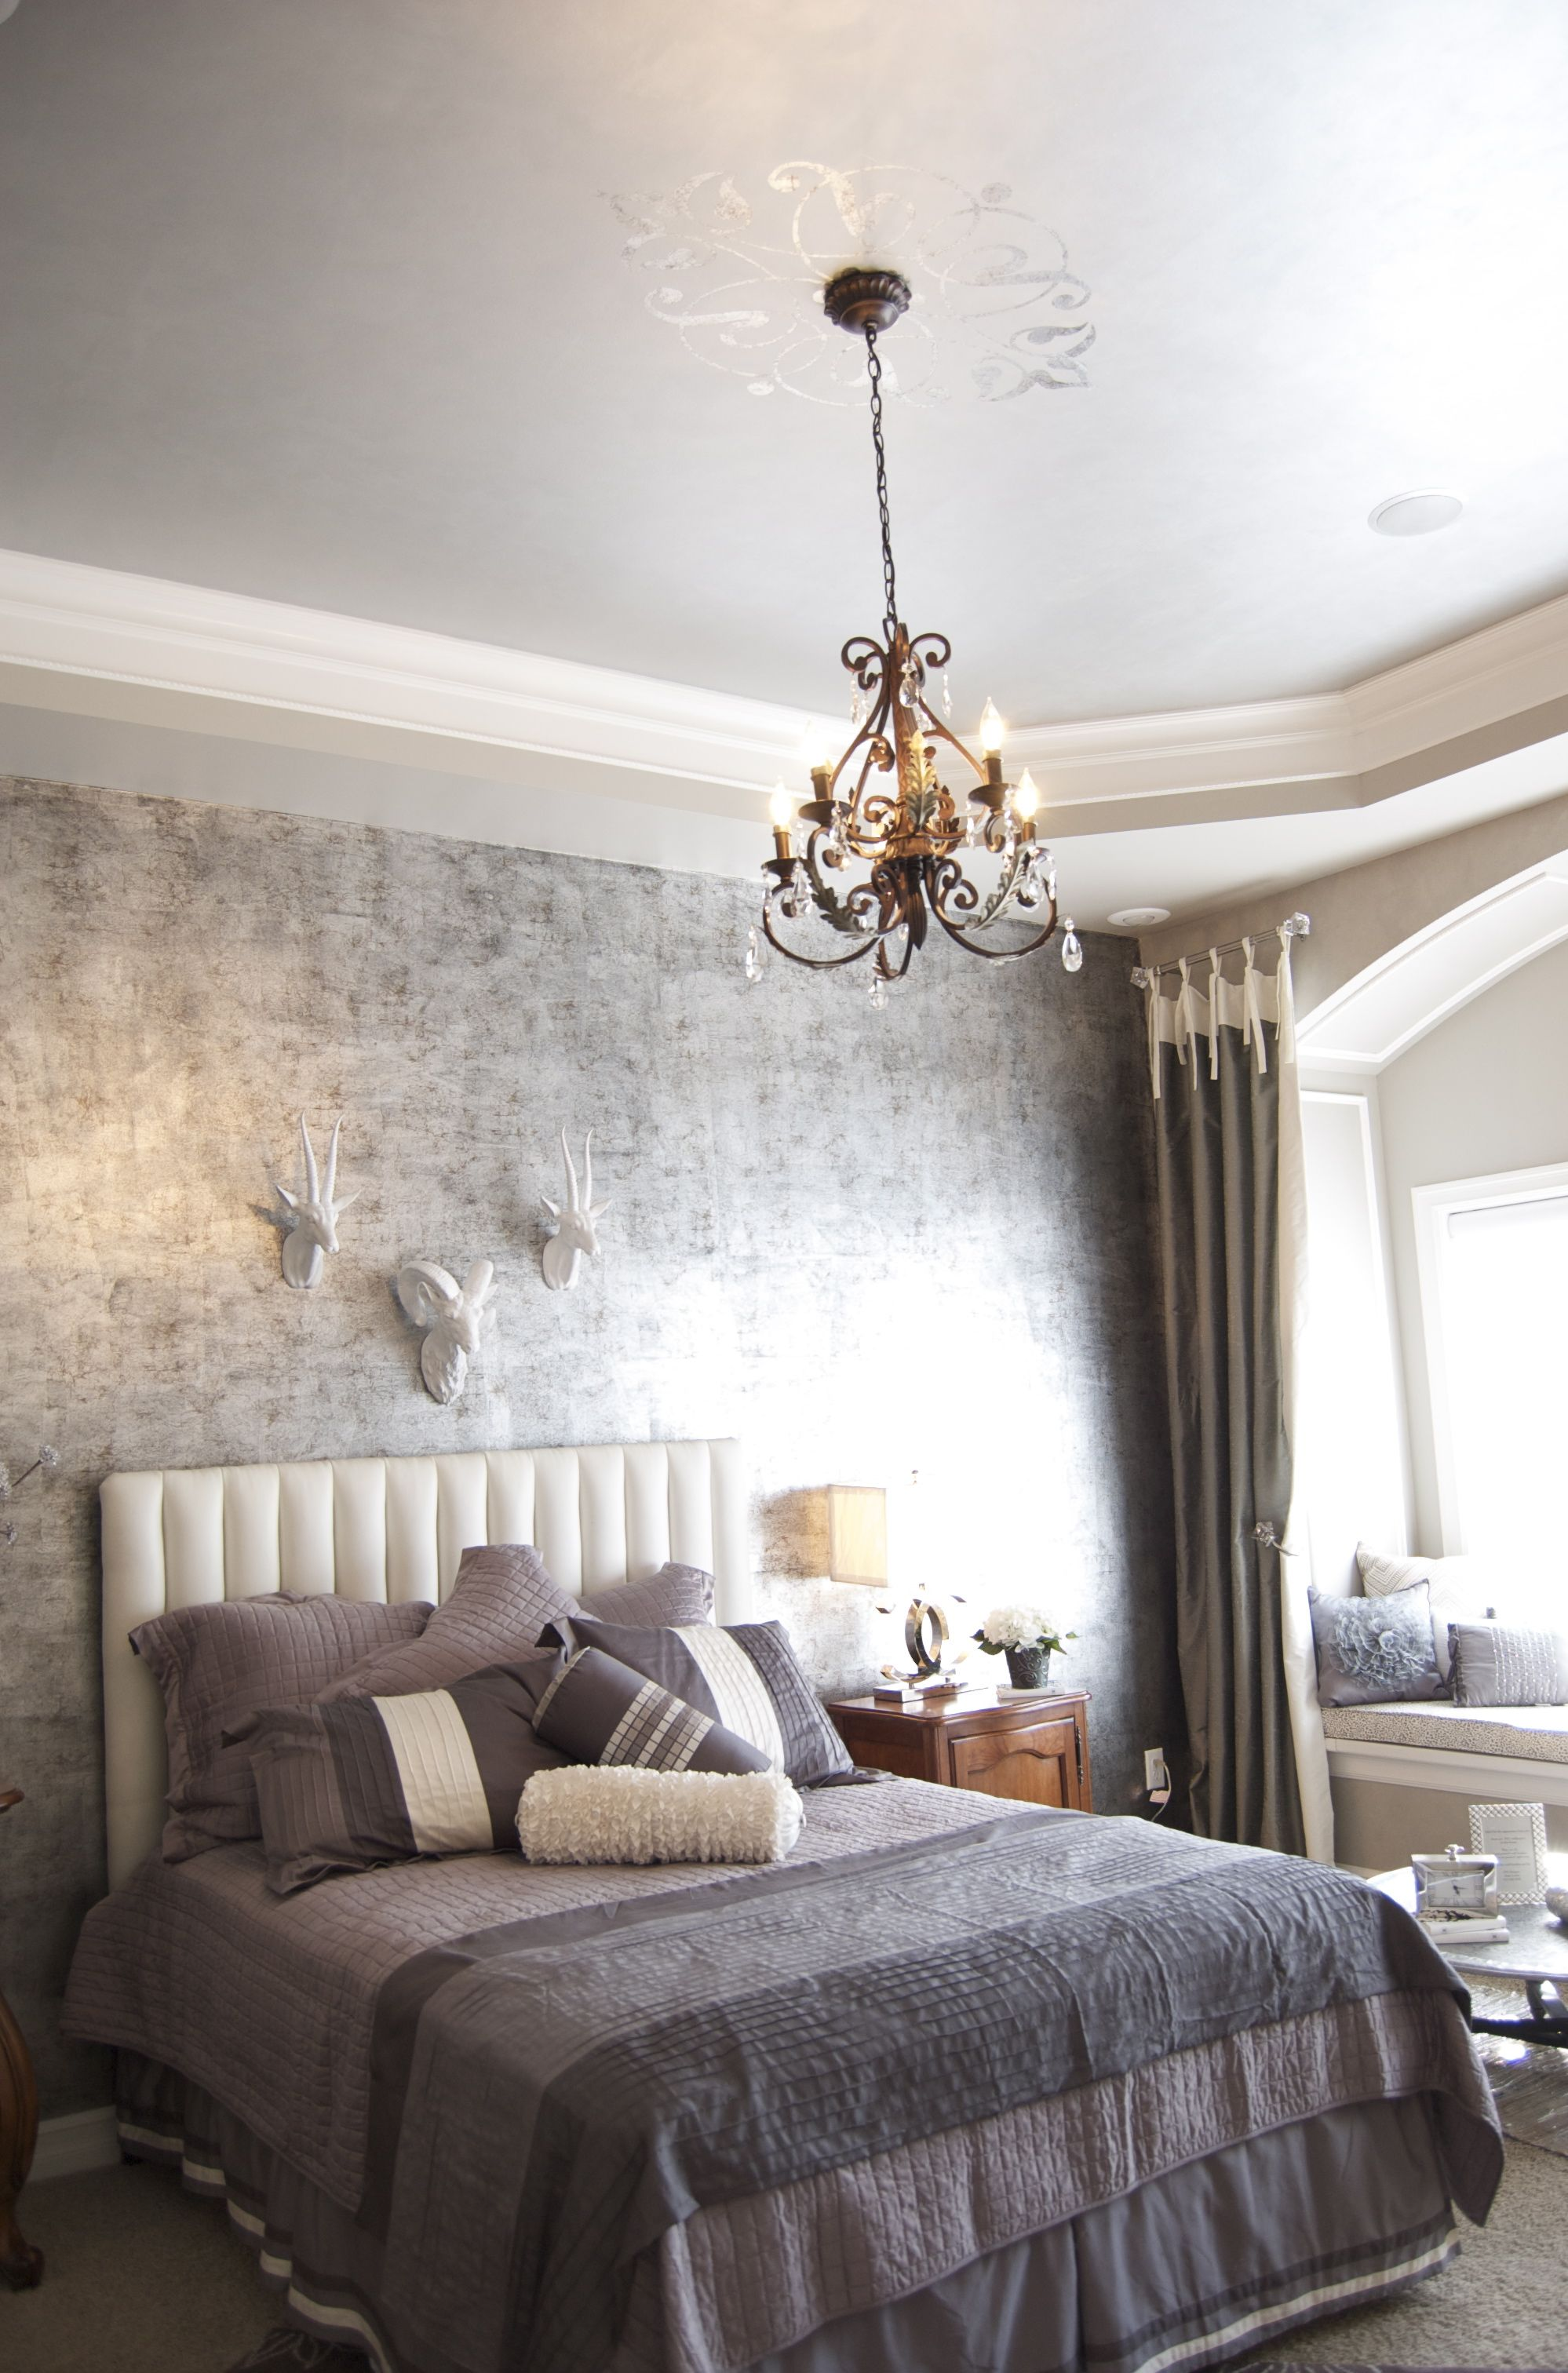 Antique silver leaf foil walls, metallic ceiling and